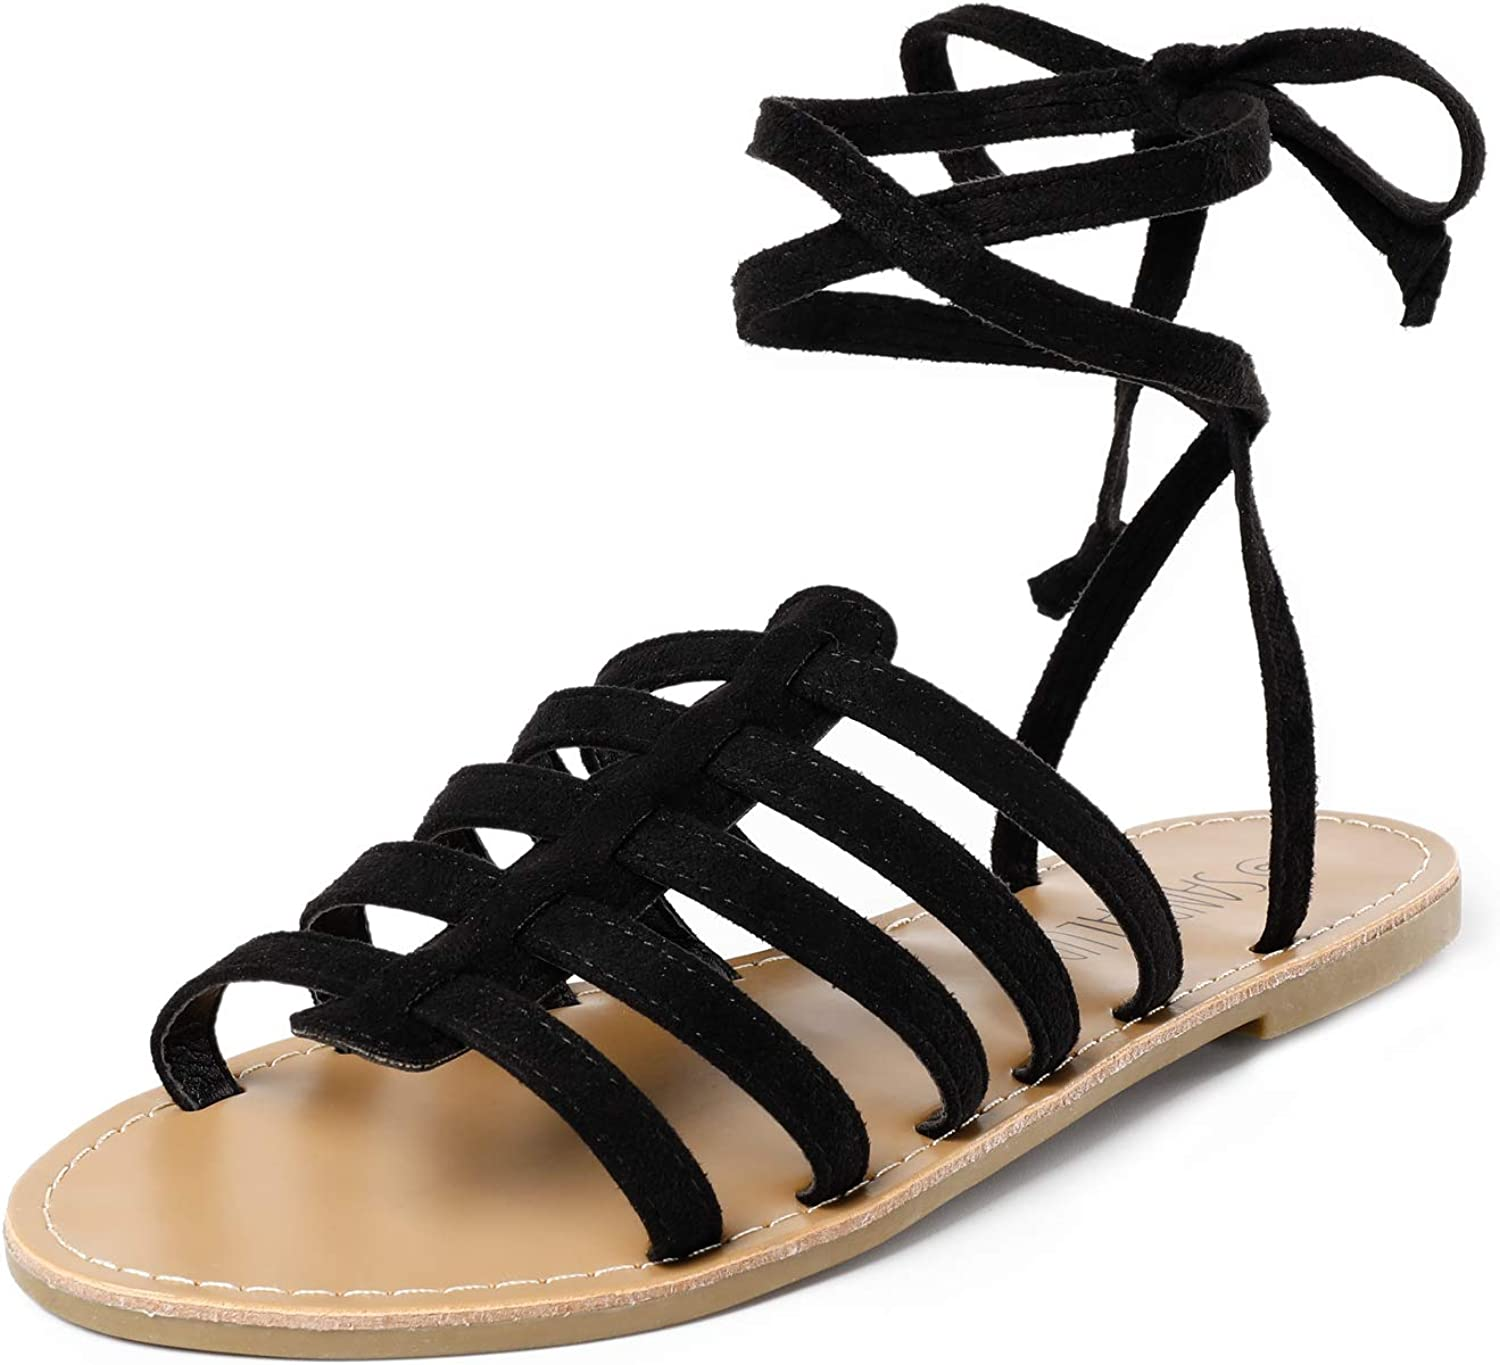 SANDALUP Gladiator Sandal Lace Clearance SALE Limited time Award up Summer Sandals for Flat Women